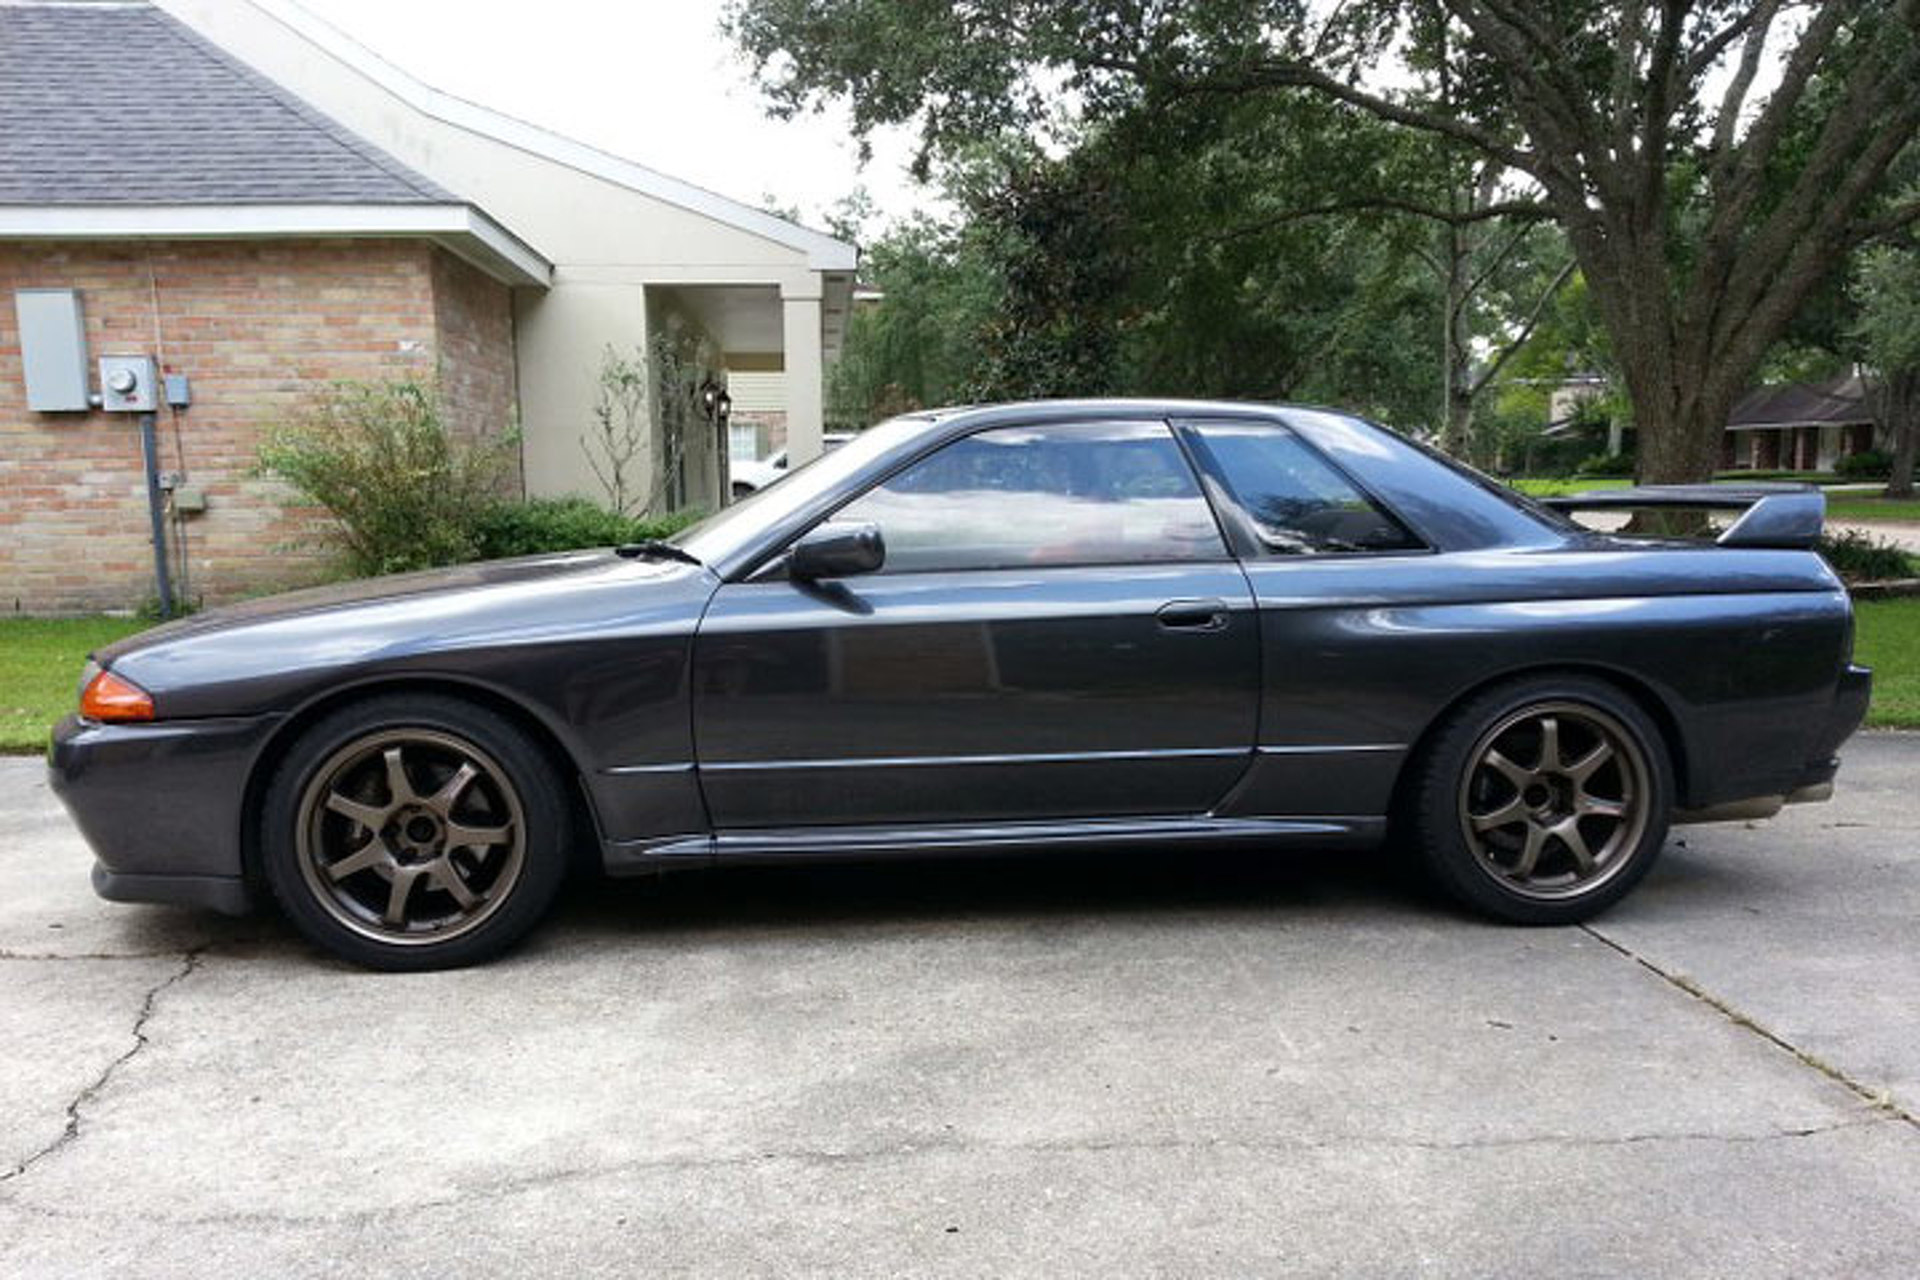 Godzilla Rises: Meet Patrick's US-Legal R32 Nissan GT-R